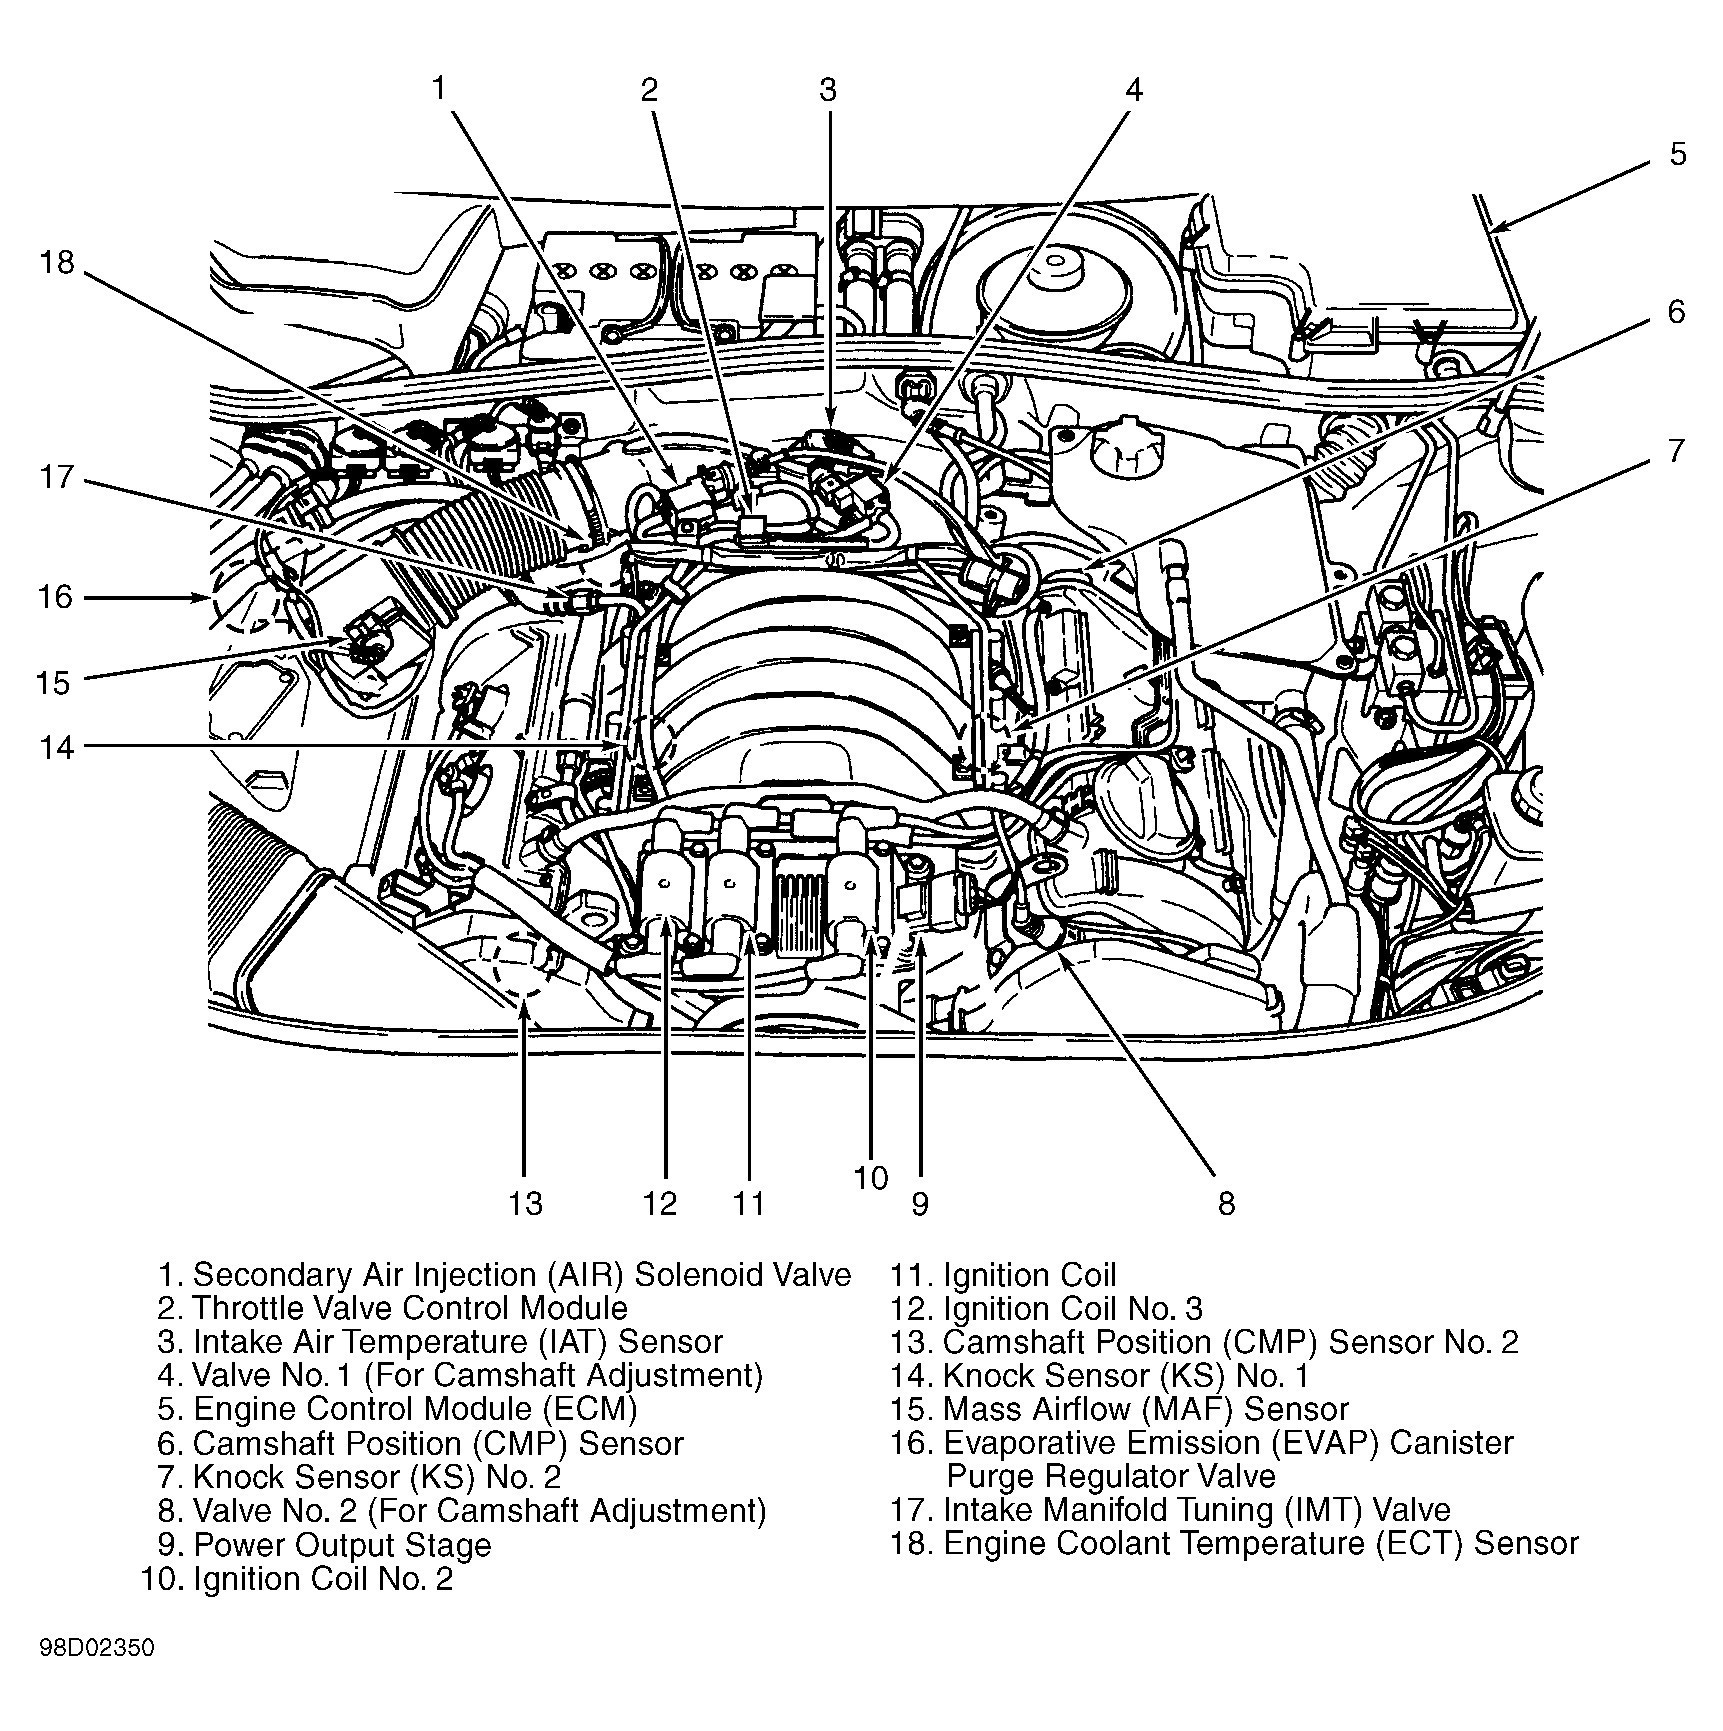 dodge durango 4 7 engine diagram wiring library rh 16 codingcommunity de  2004 Jeep Liberty Parts Diagram Dodge 3.7 Firing Order